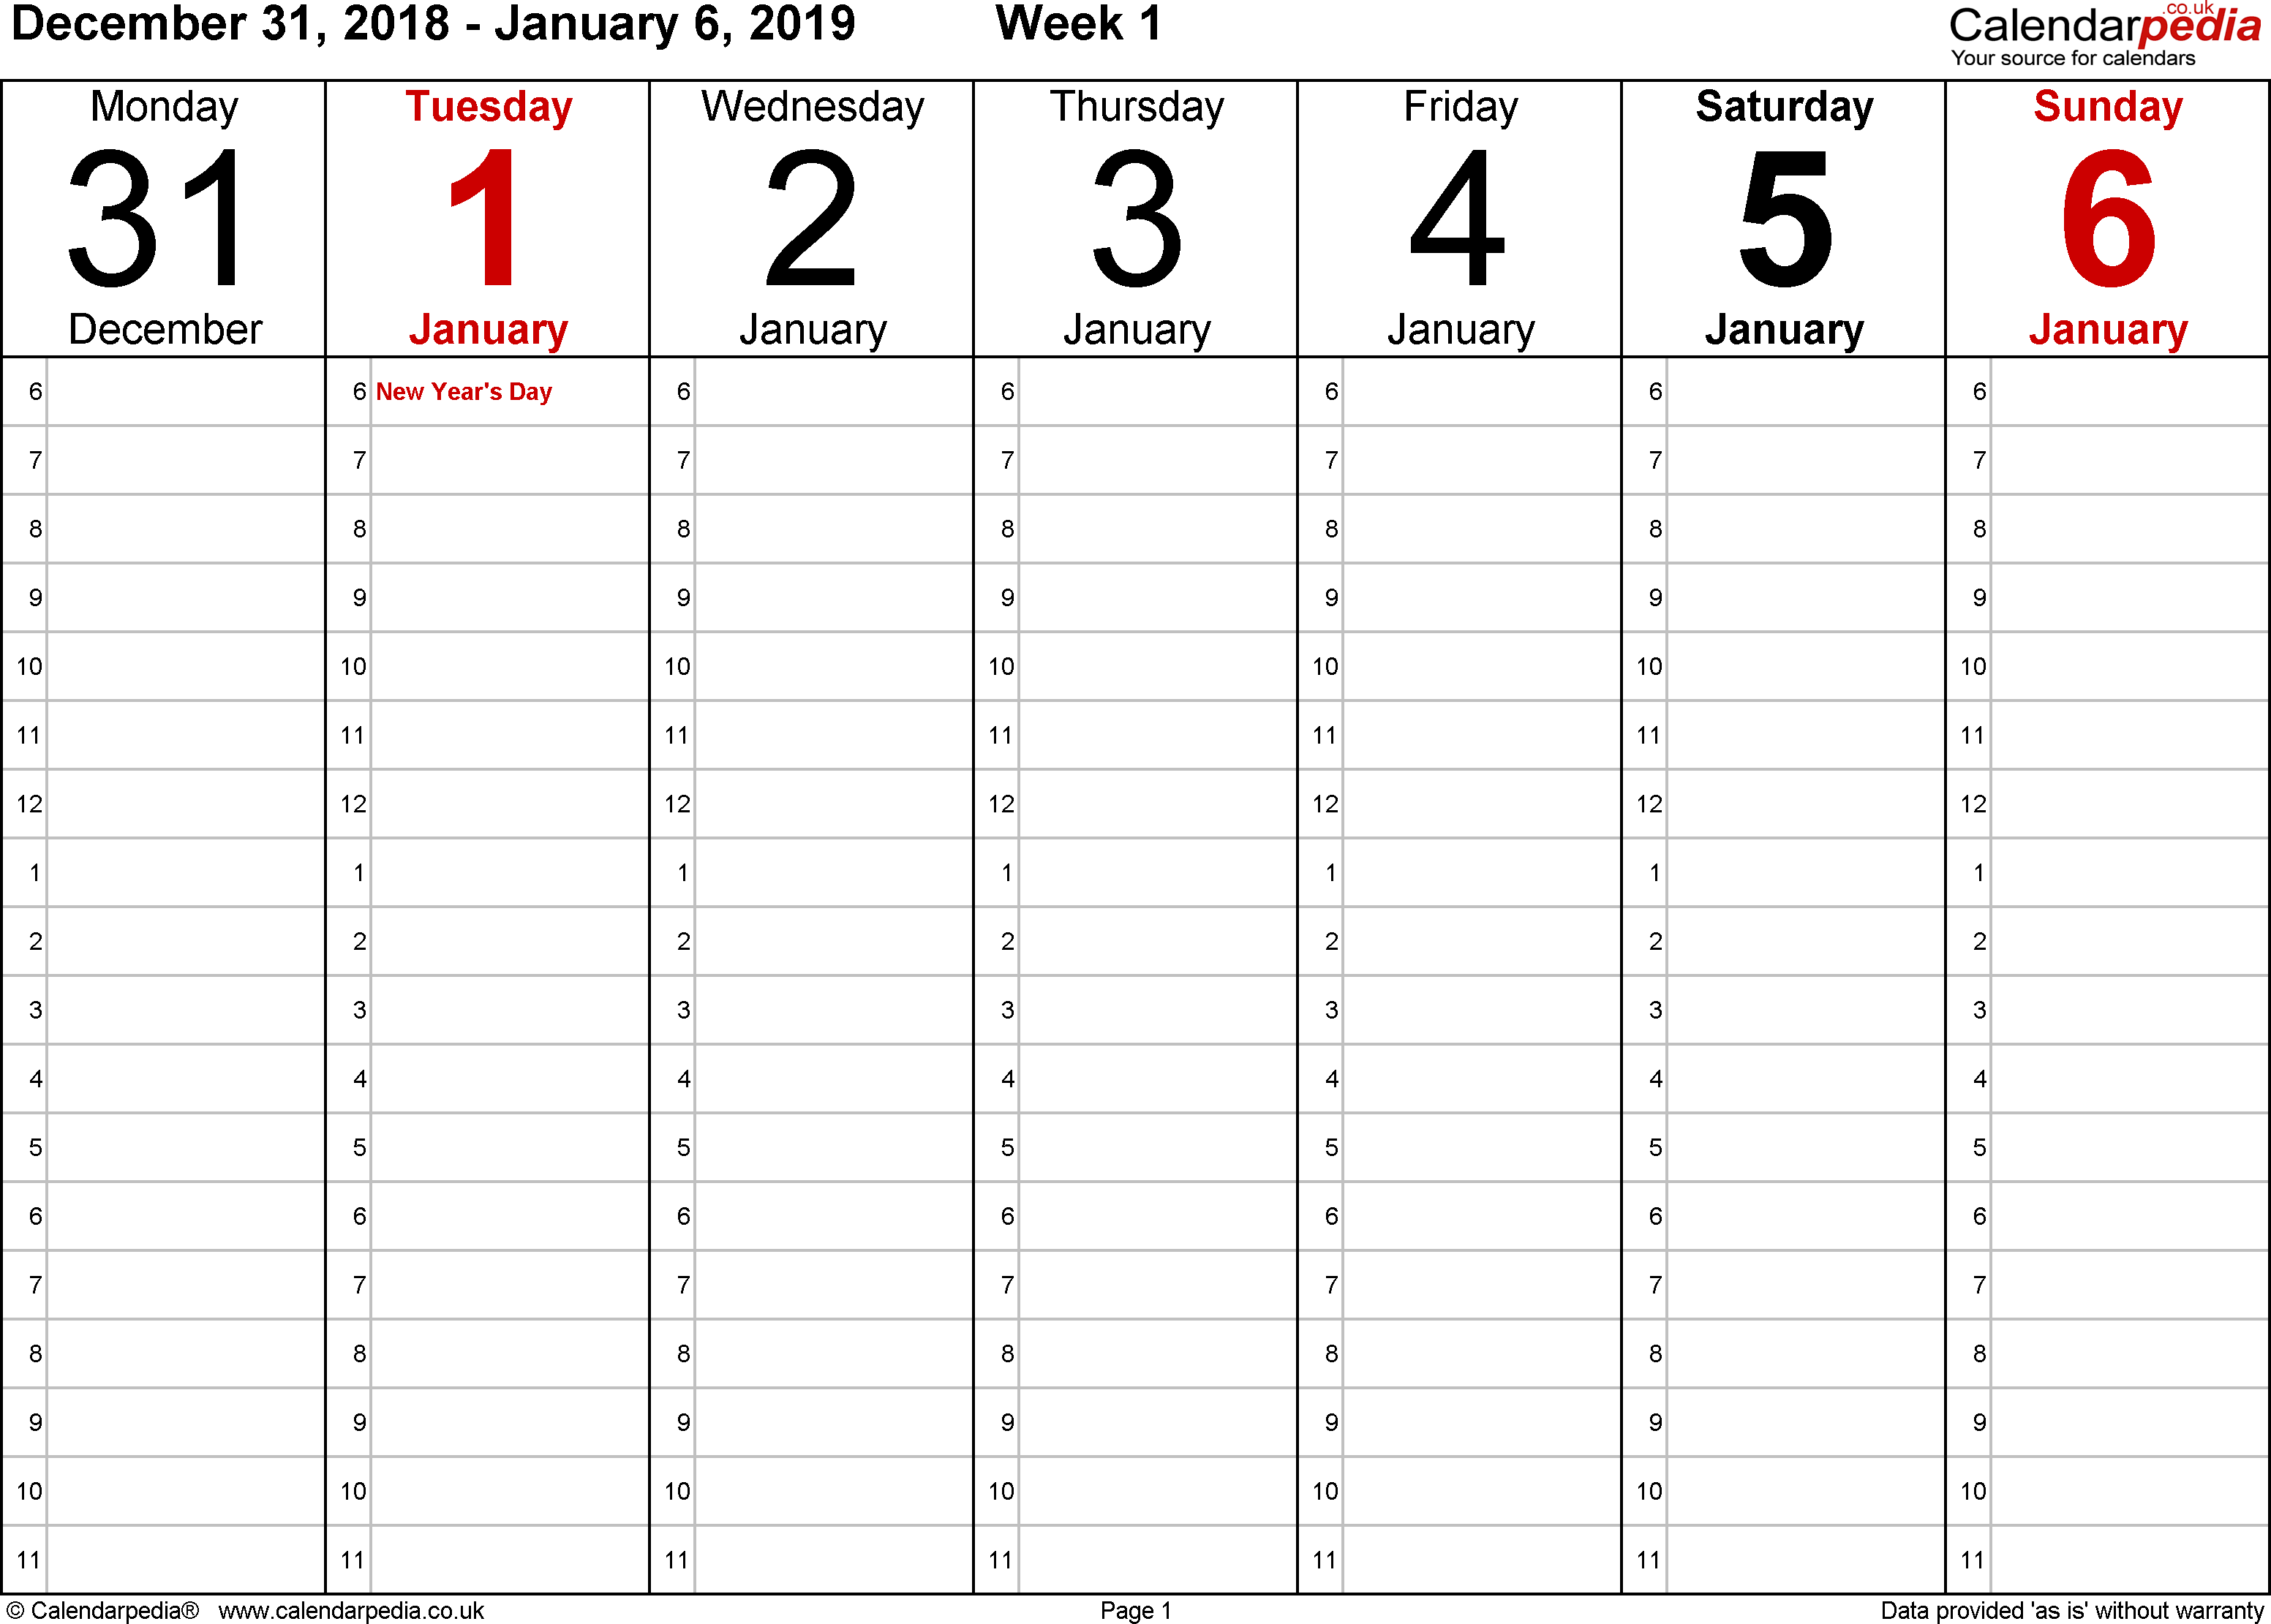 Download Word template 1: Weekly calendar 2019, landscape orientation, 53 pages (1 calendar week on 1 page), time management layout (showing 18 hours per day from 6am to midnight in 1 hour steps)